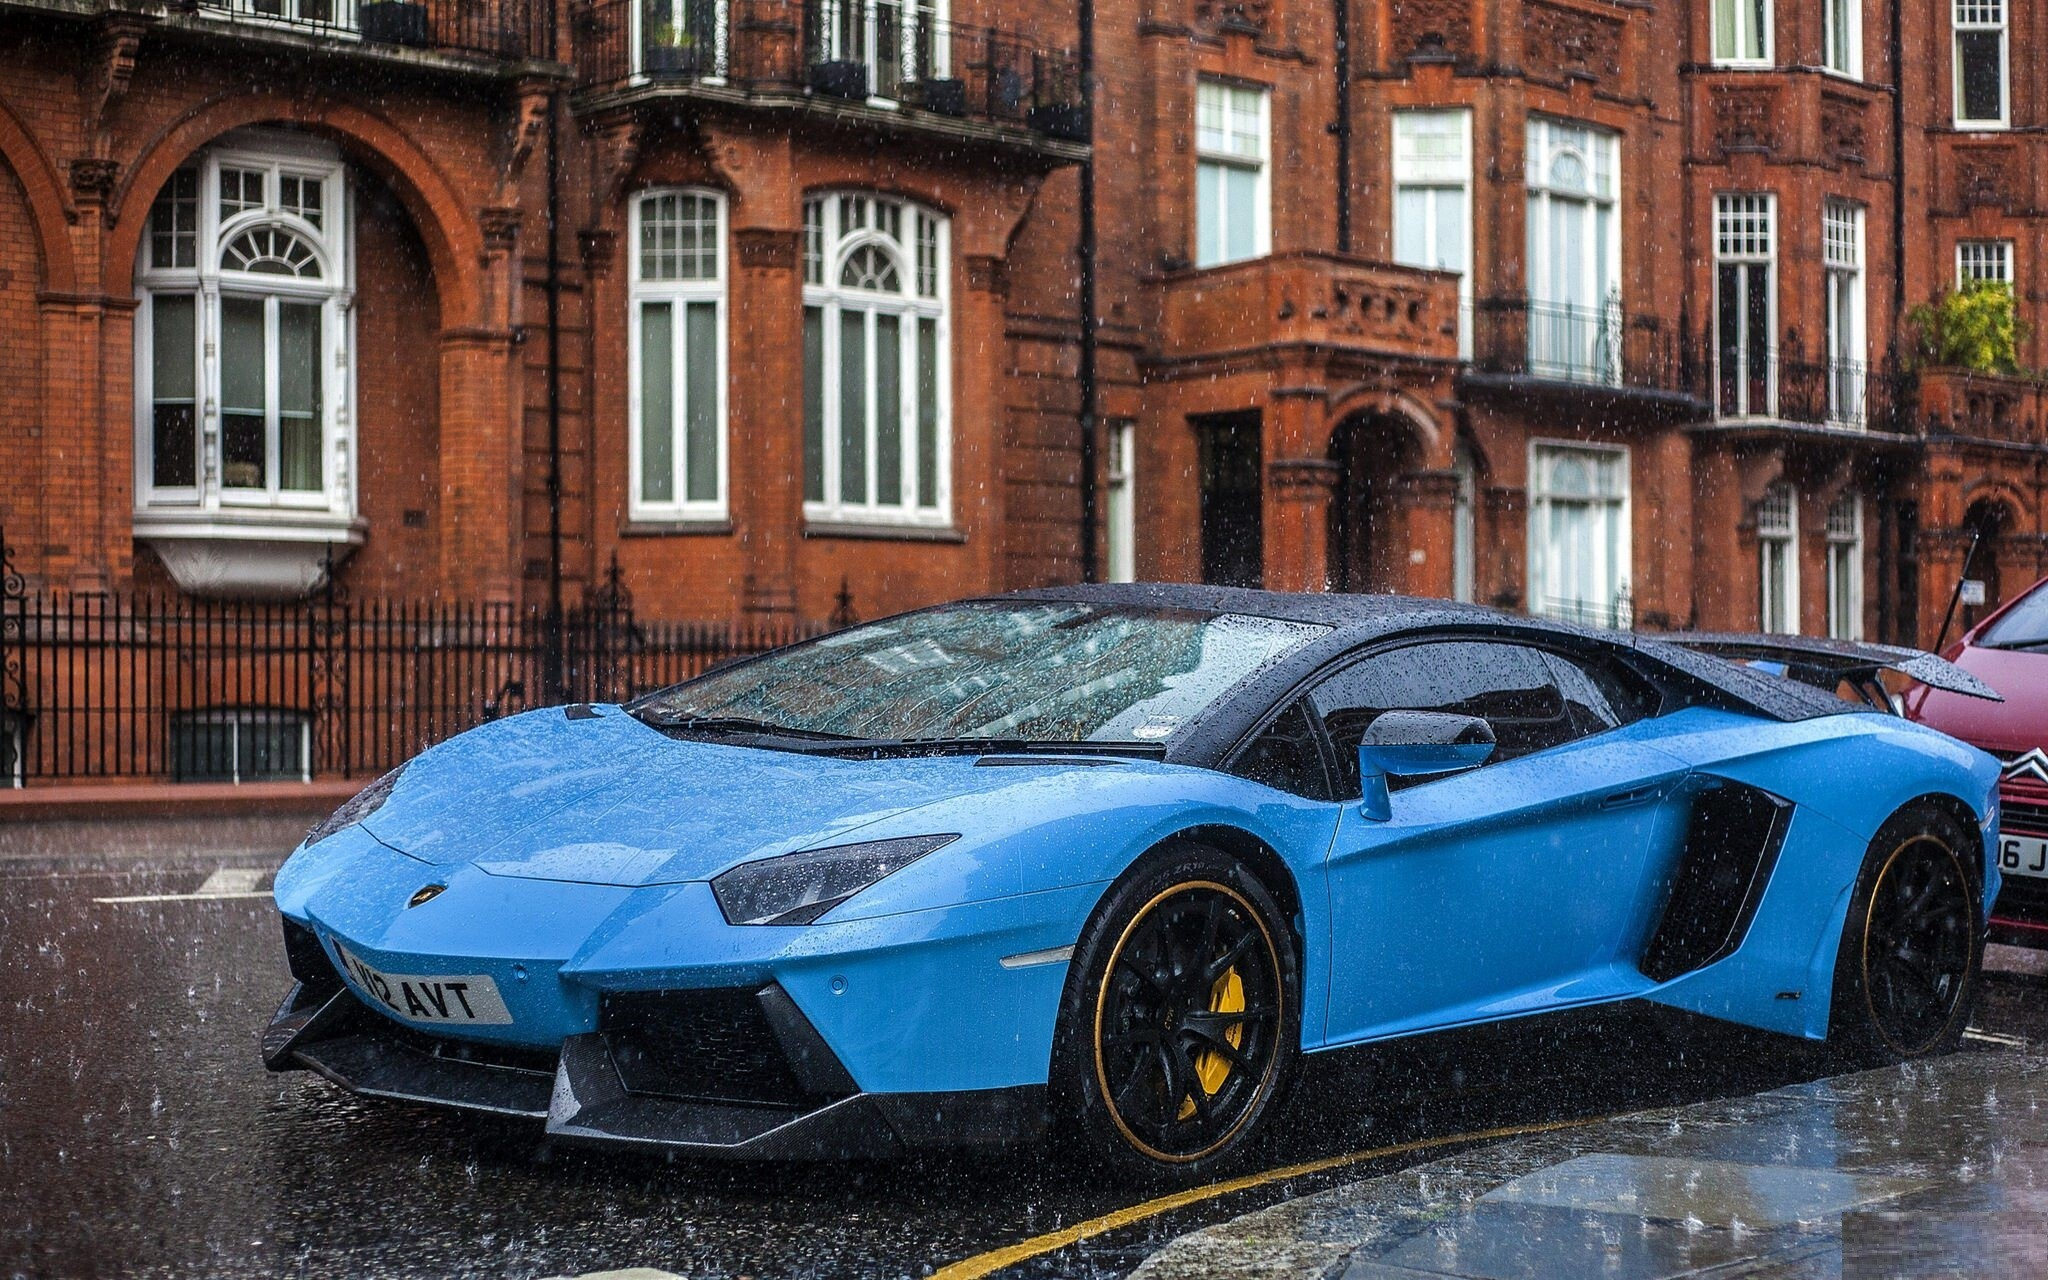 Aventador Lamborghini Blue Car In Rain Hd Luxury Wallpaper Hd